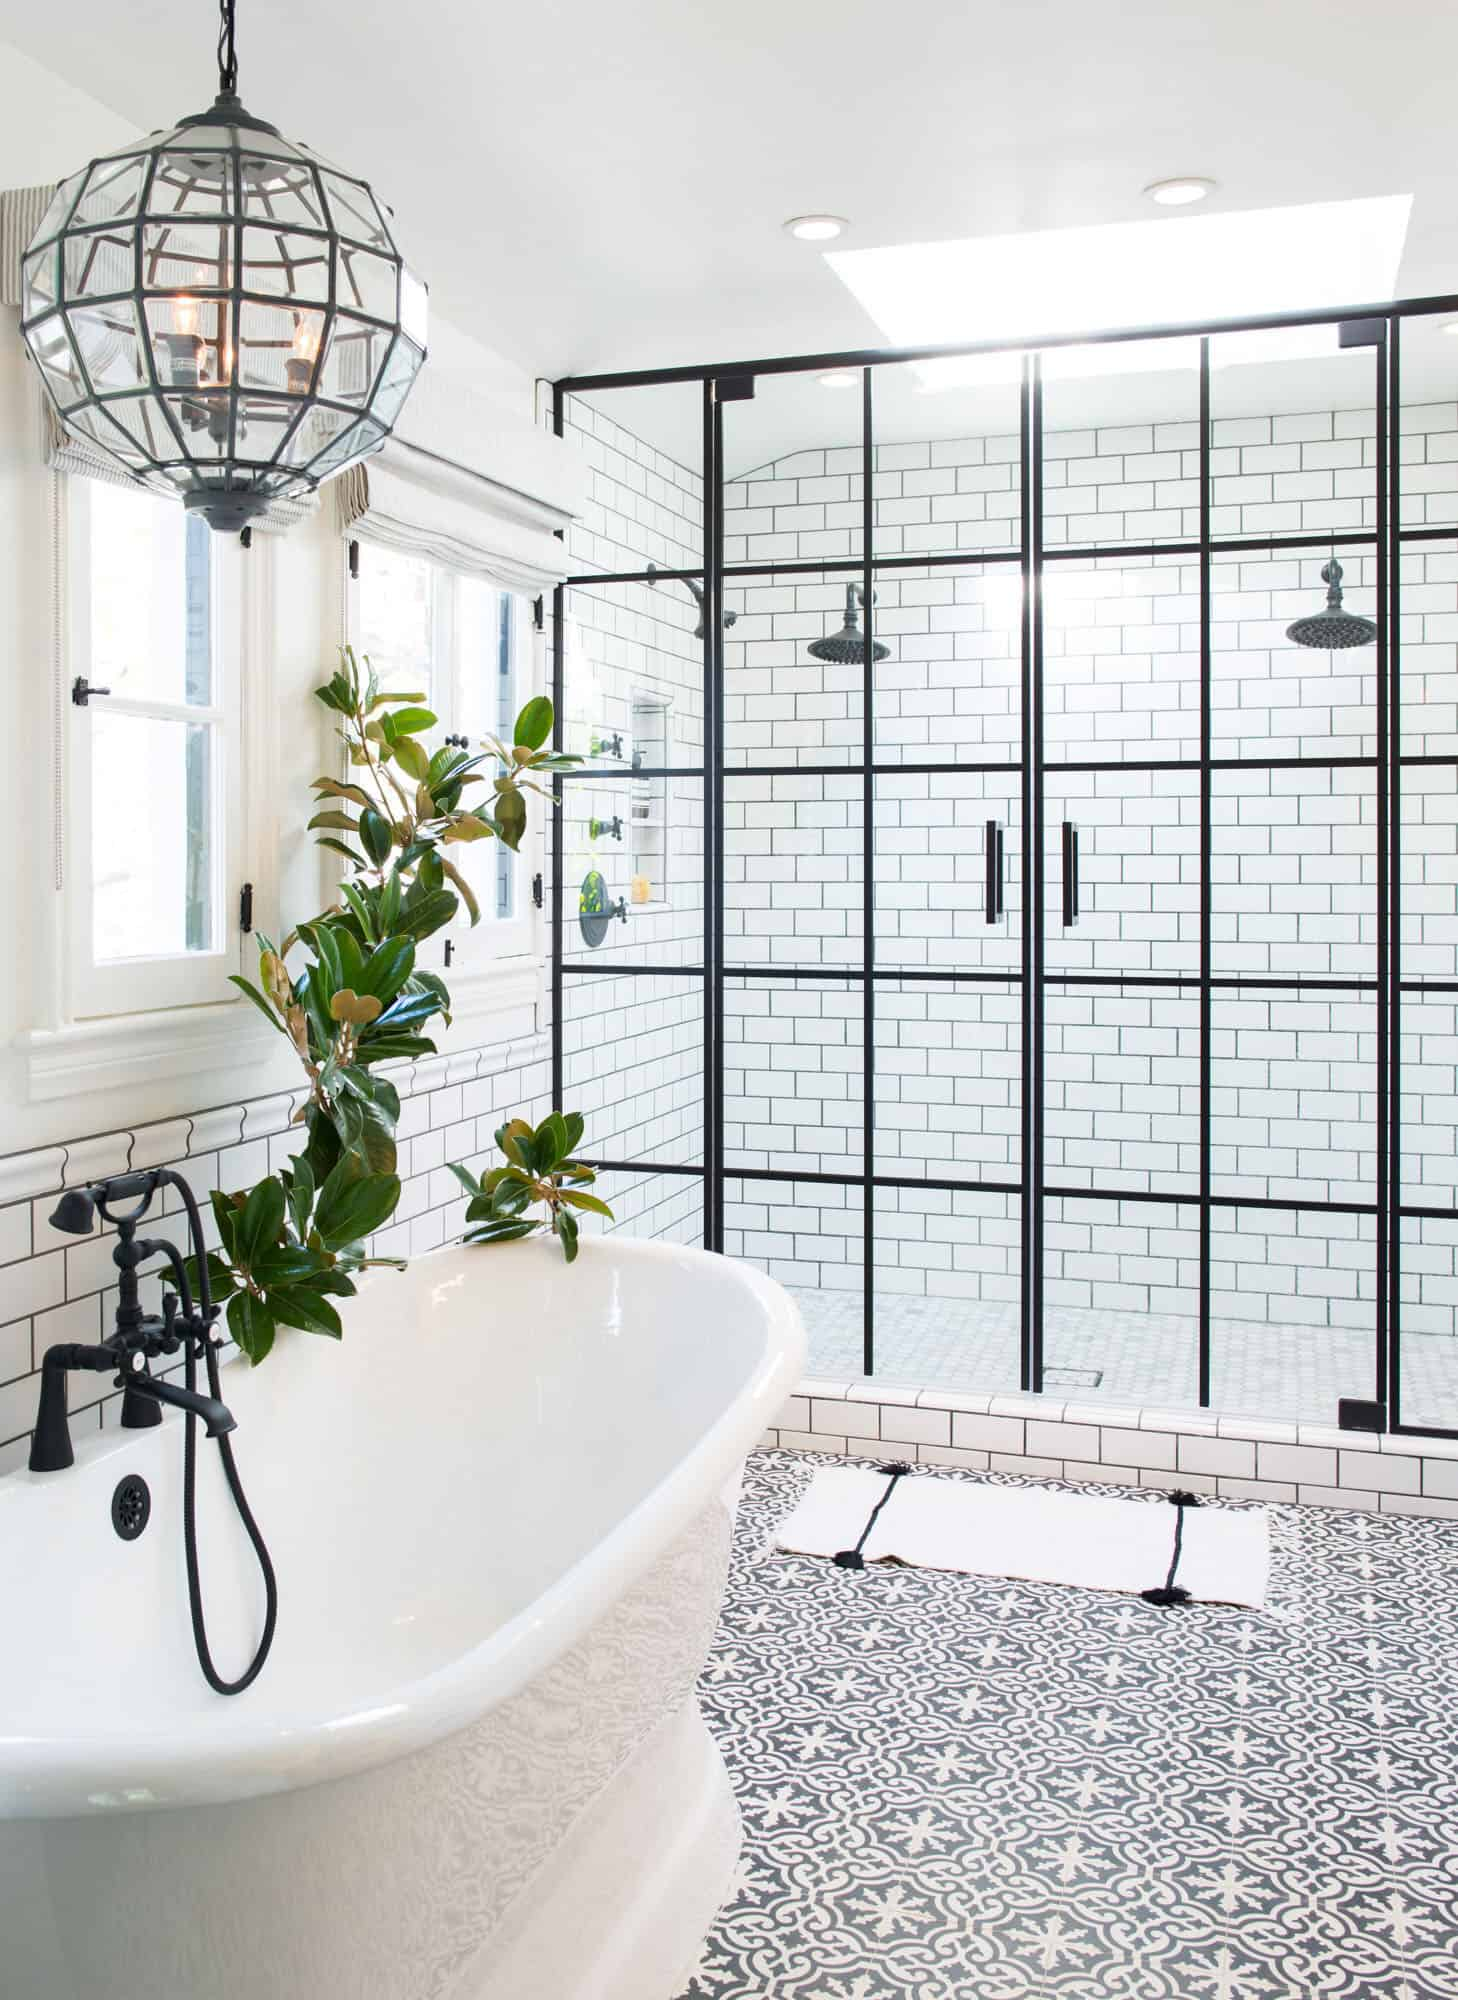 18 Drool Worthy Bathrooms Decked Out With Gorgeous Flooring